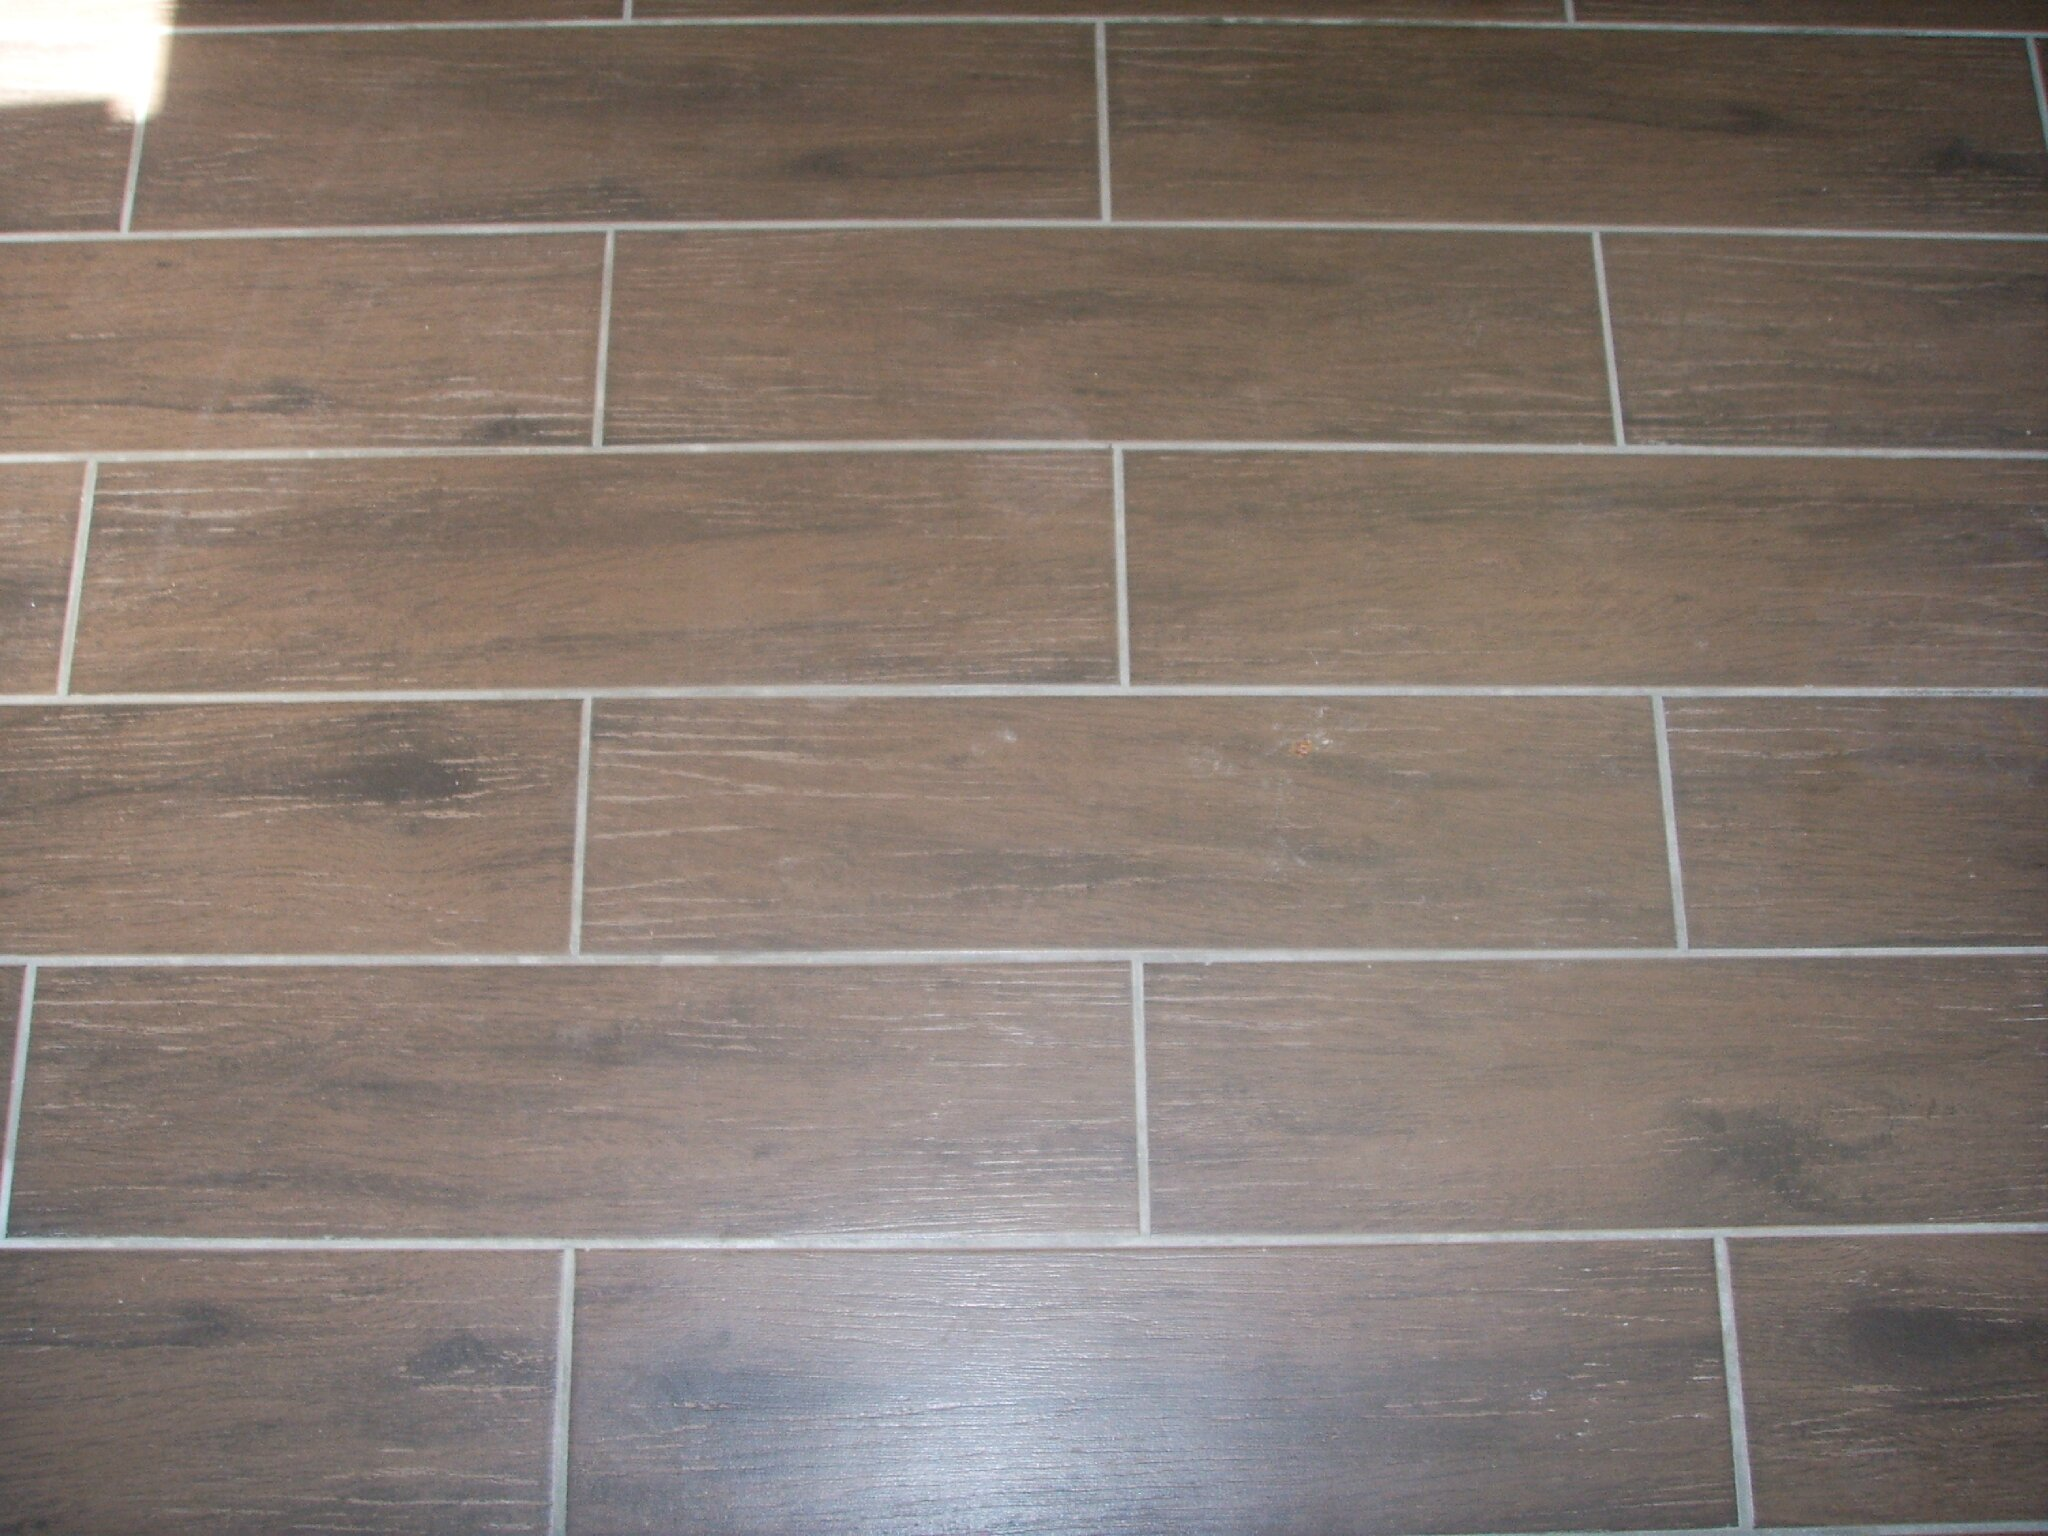 Parquet ou carrelage appartement devis pour travaux maison for Casa carrelage rennes